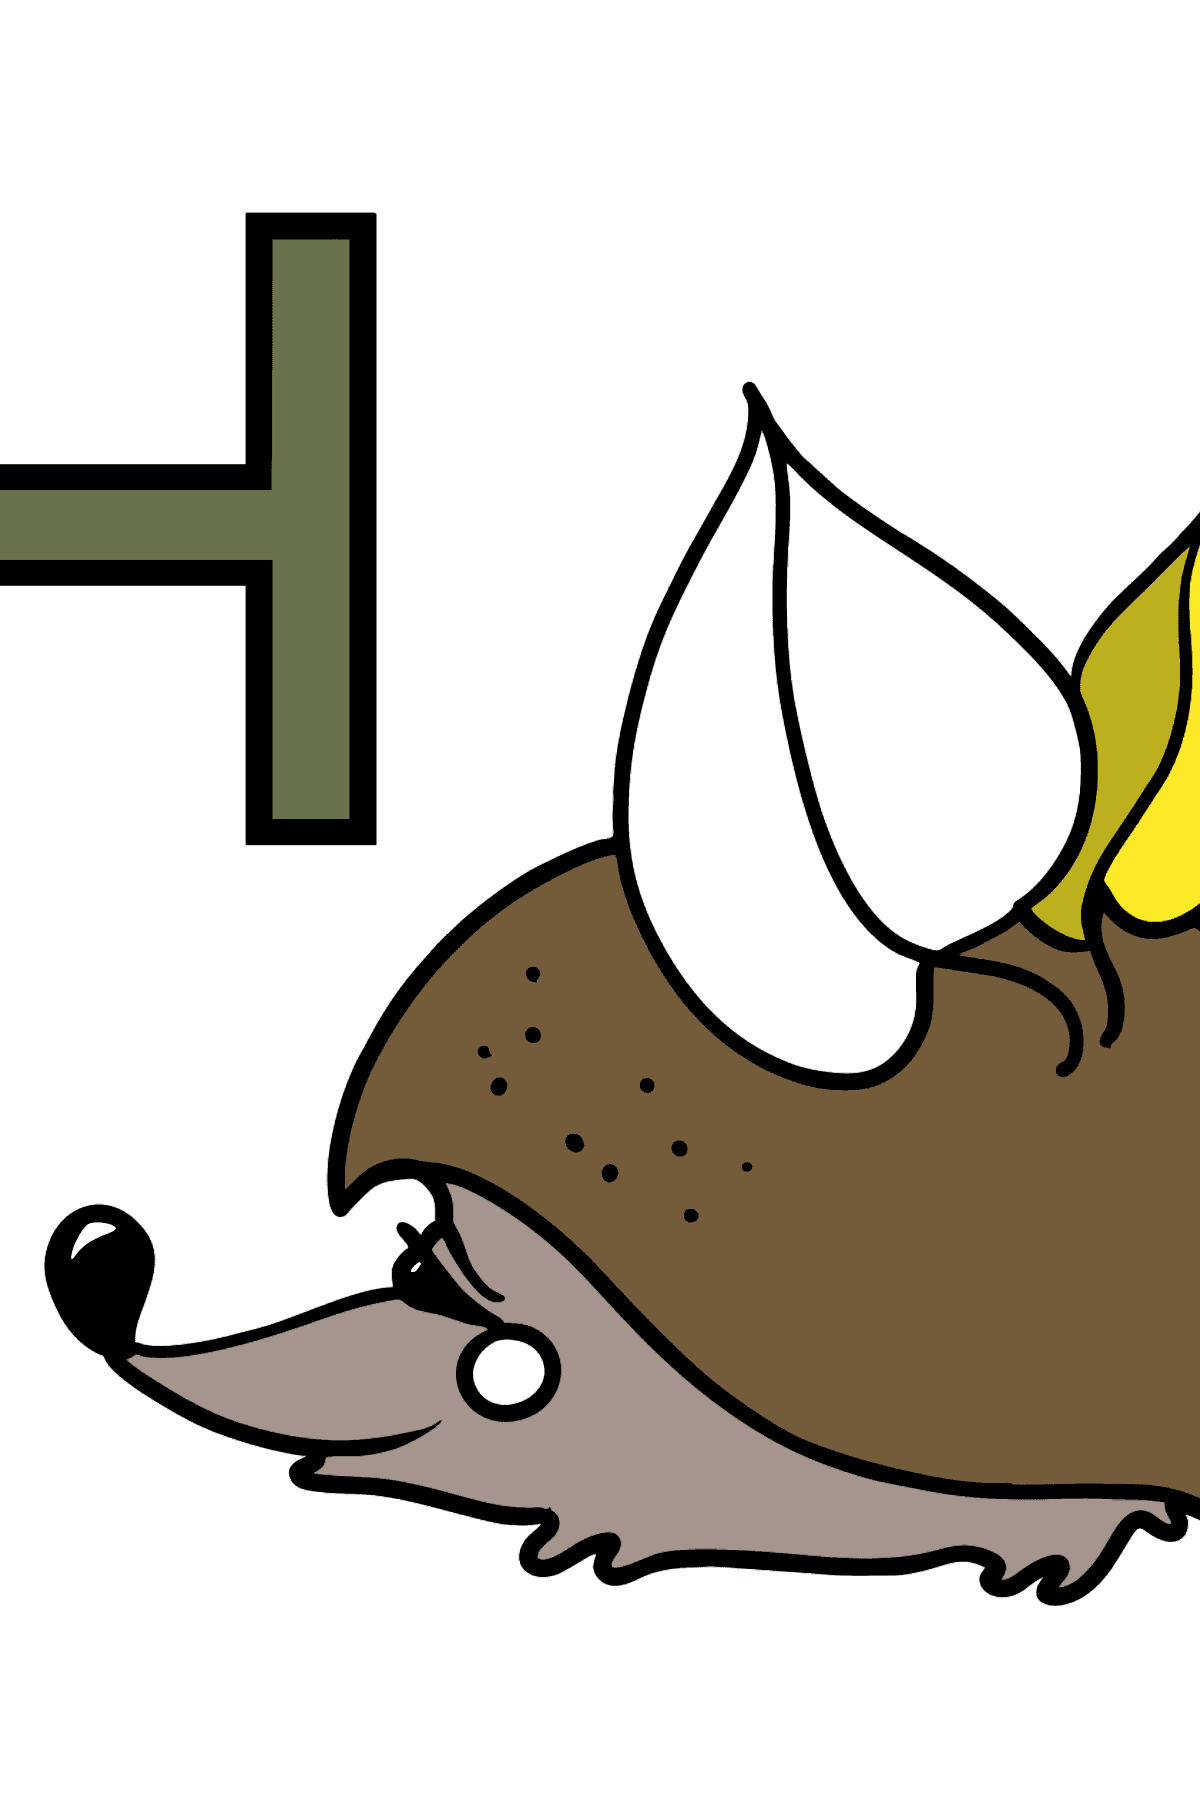 English Letter H coloring pages - HEDGEHOG - Coloring Pages for Kids